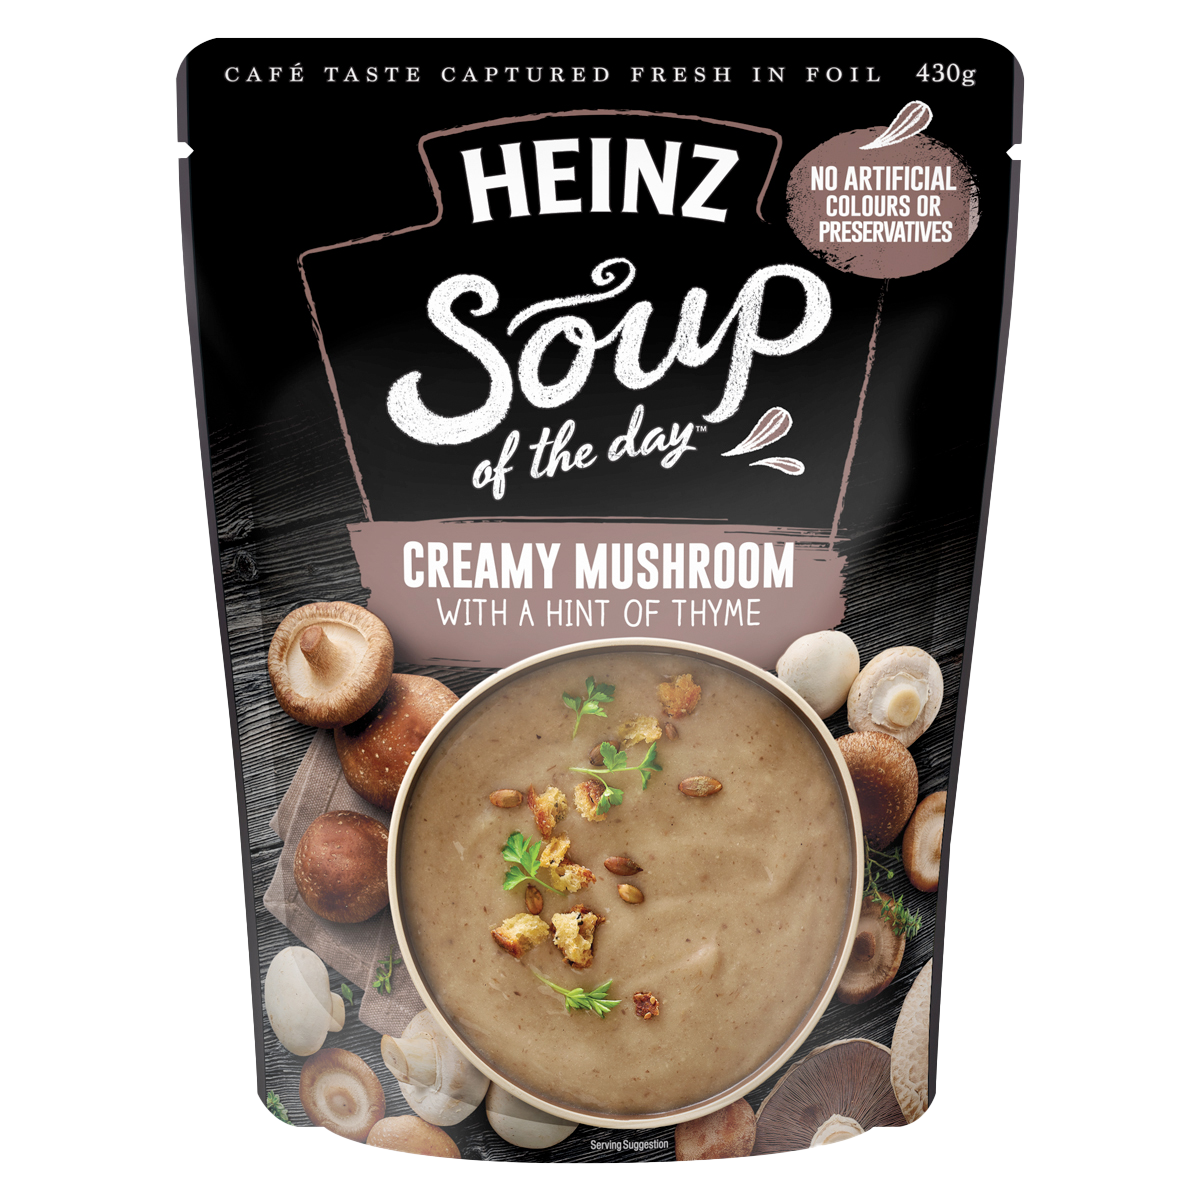 Heinz Soup of the Day Creamy Mushroom with a hint of Thyme